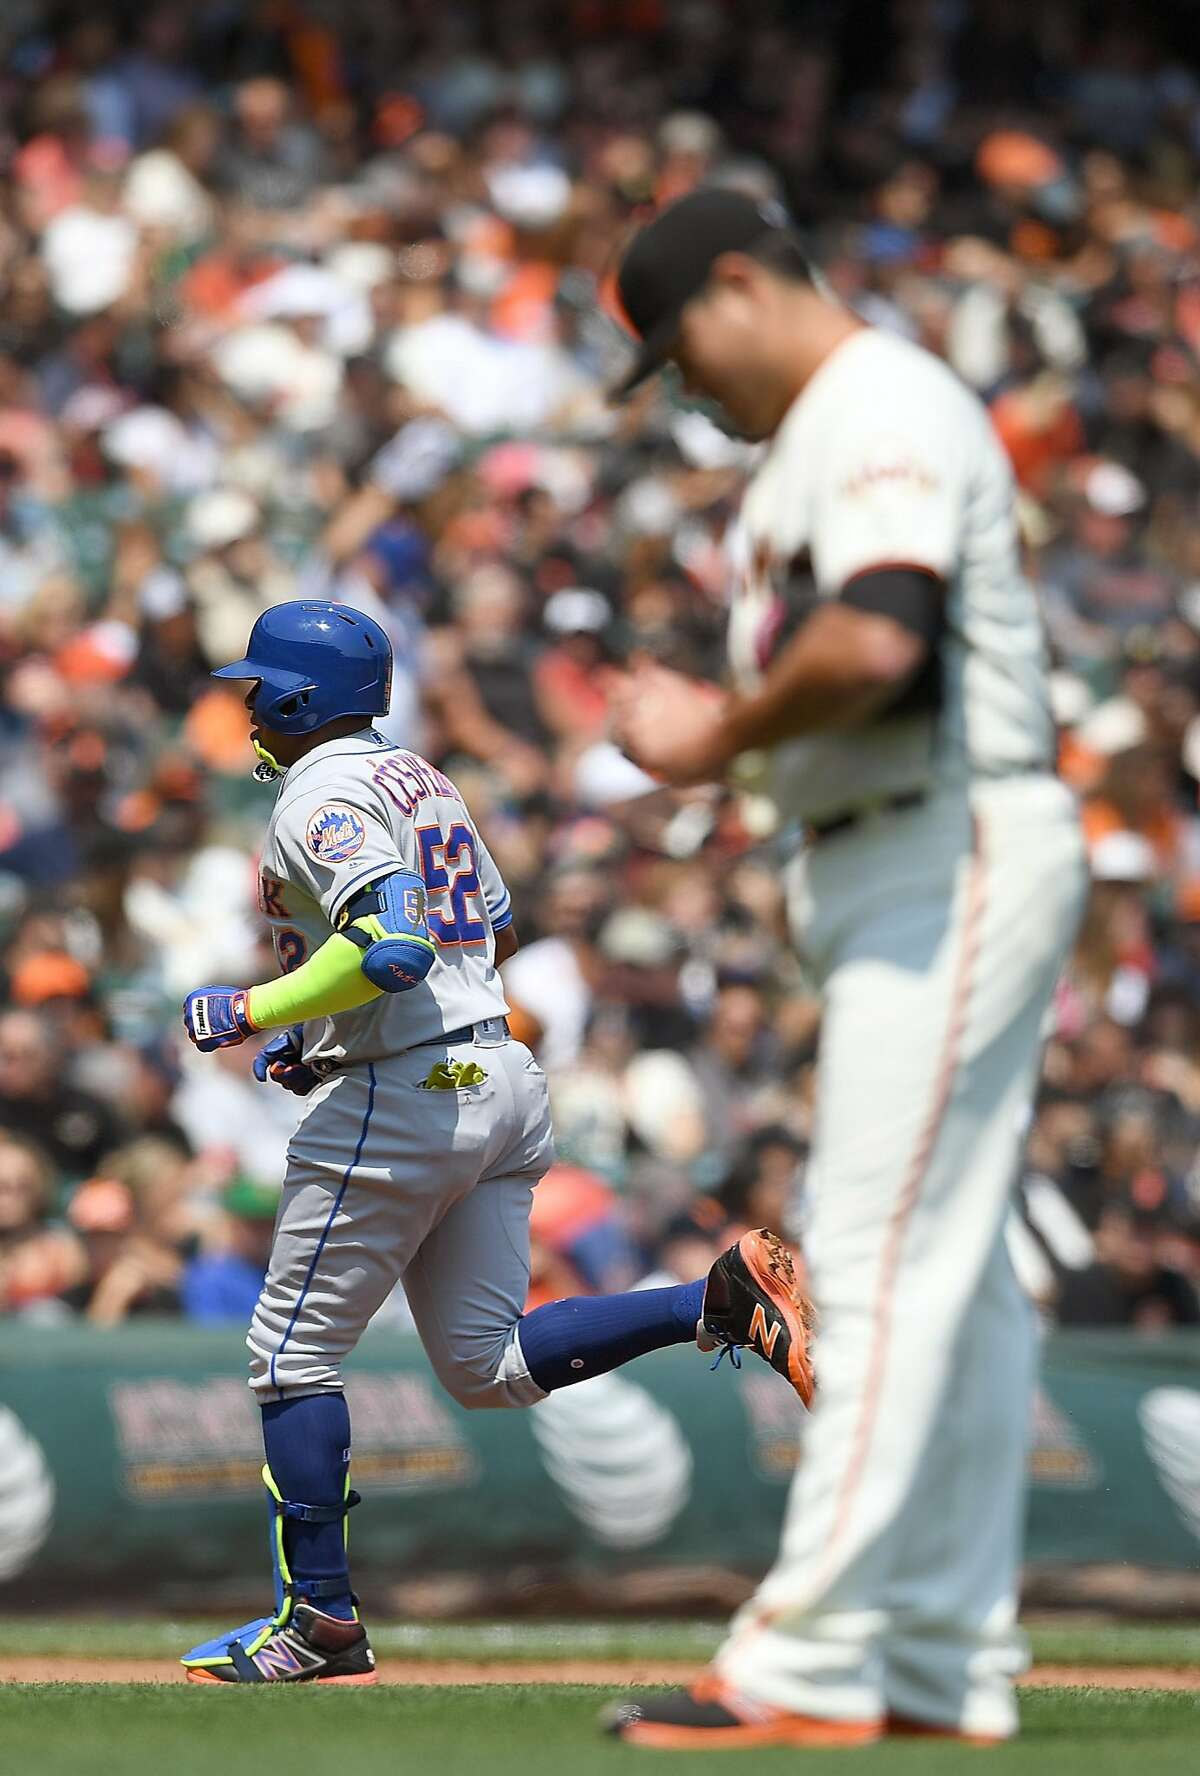 SAN FRANCISCO, CA - AUGUST 20: Yoenis Cespedes #52 of the New York Mets trots around the bases after hitting a solo home run off of Matt Moore #45 of the San Francisco Giants in the top of the third inning at AT&T Park on August 20, 2016 in San Francisco, California. (Photo by Thearon W. Henderson/Getty Images)